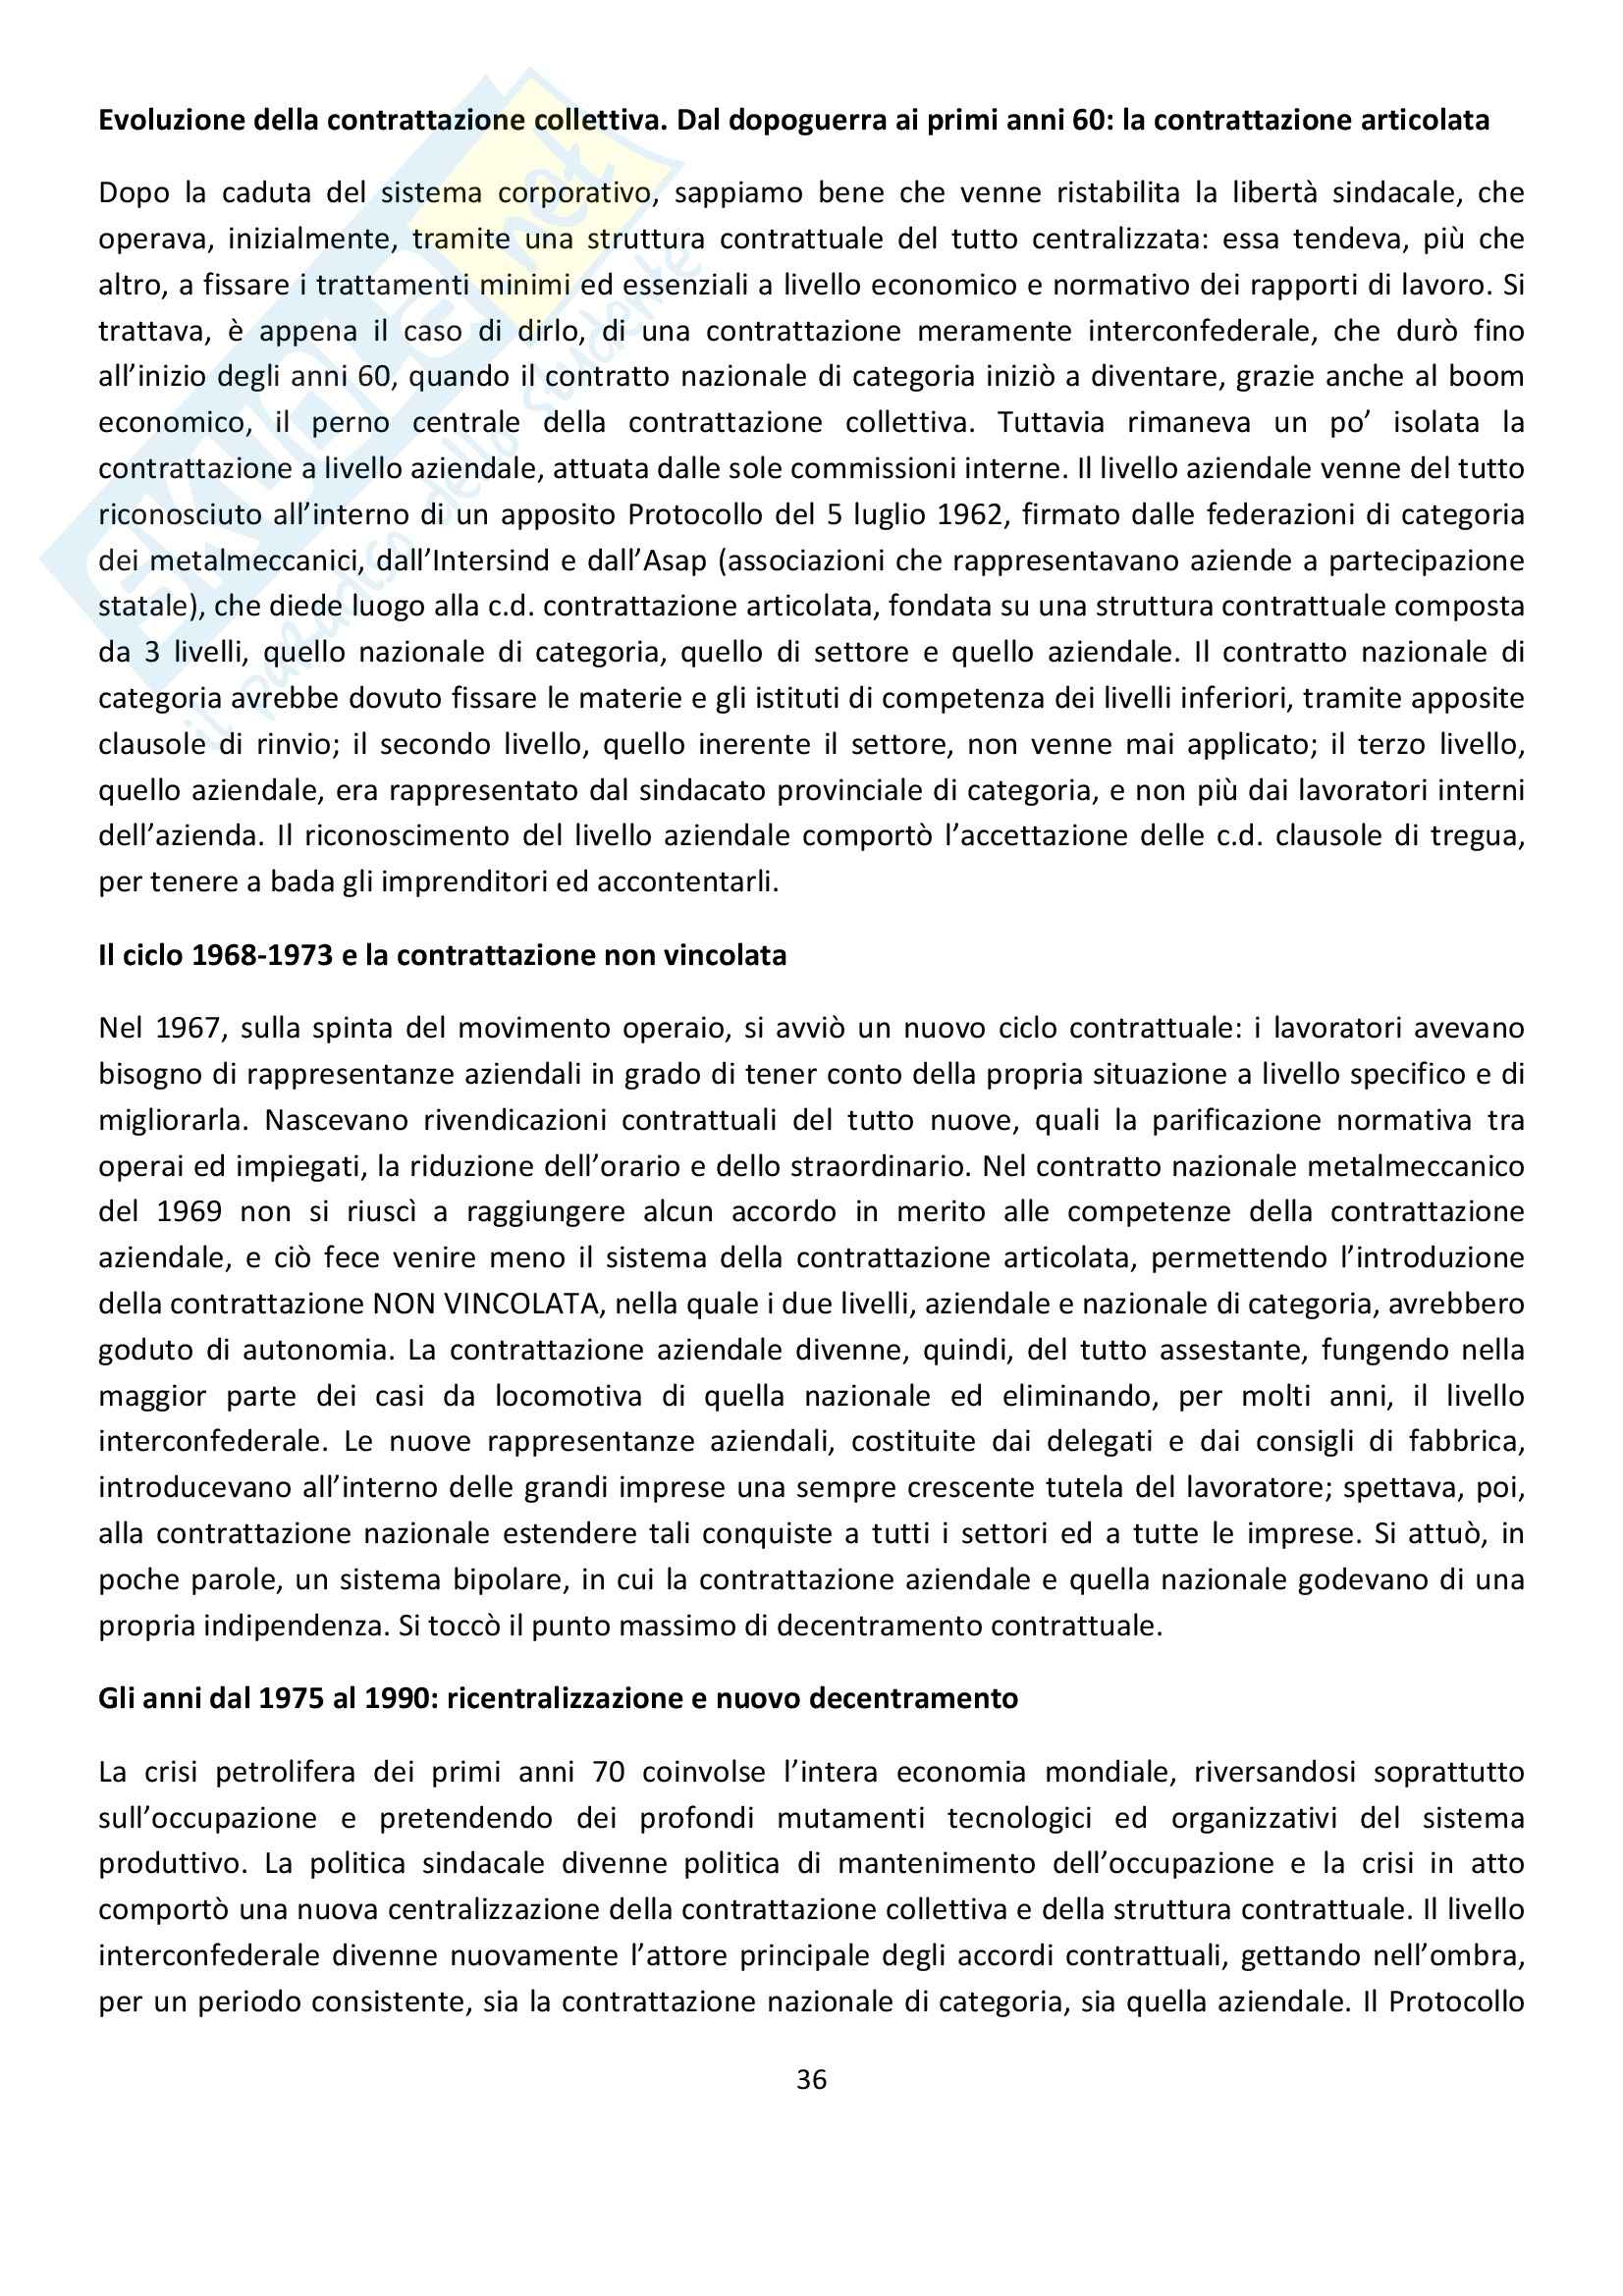 Diritto Sindacale Pag. 36